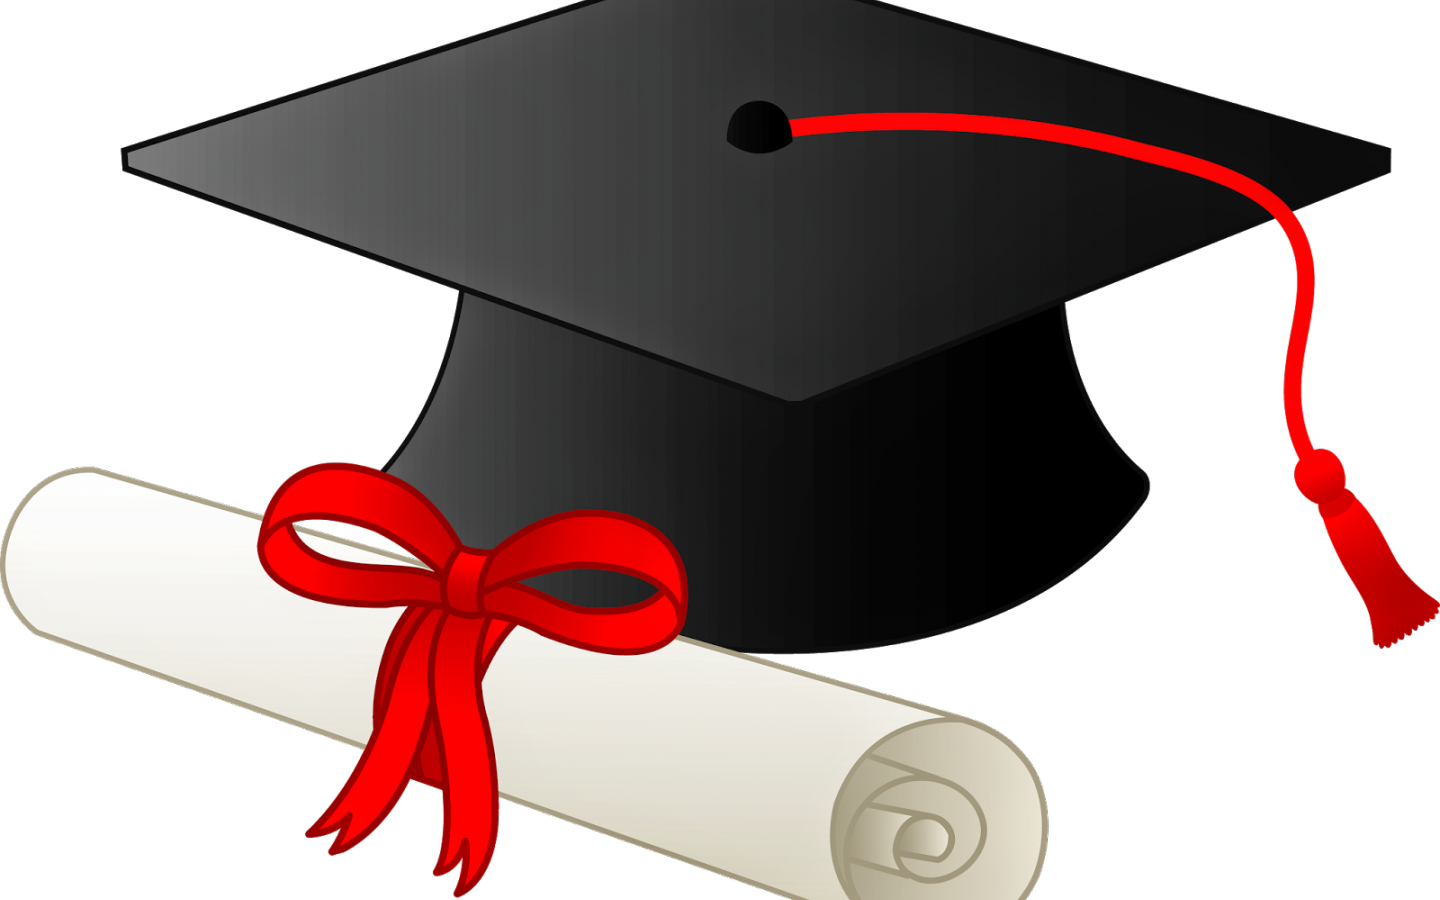 banner Graduation x carwad net. Where is in 2013 clipart.